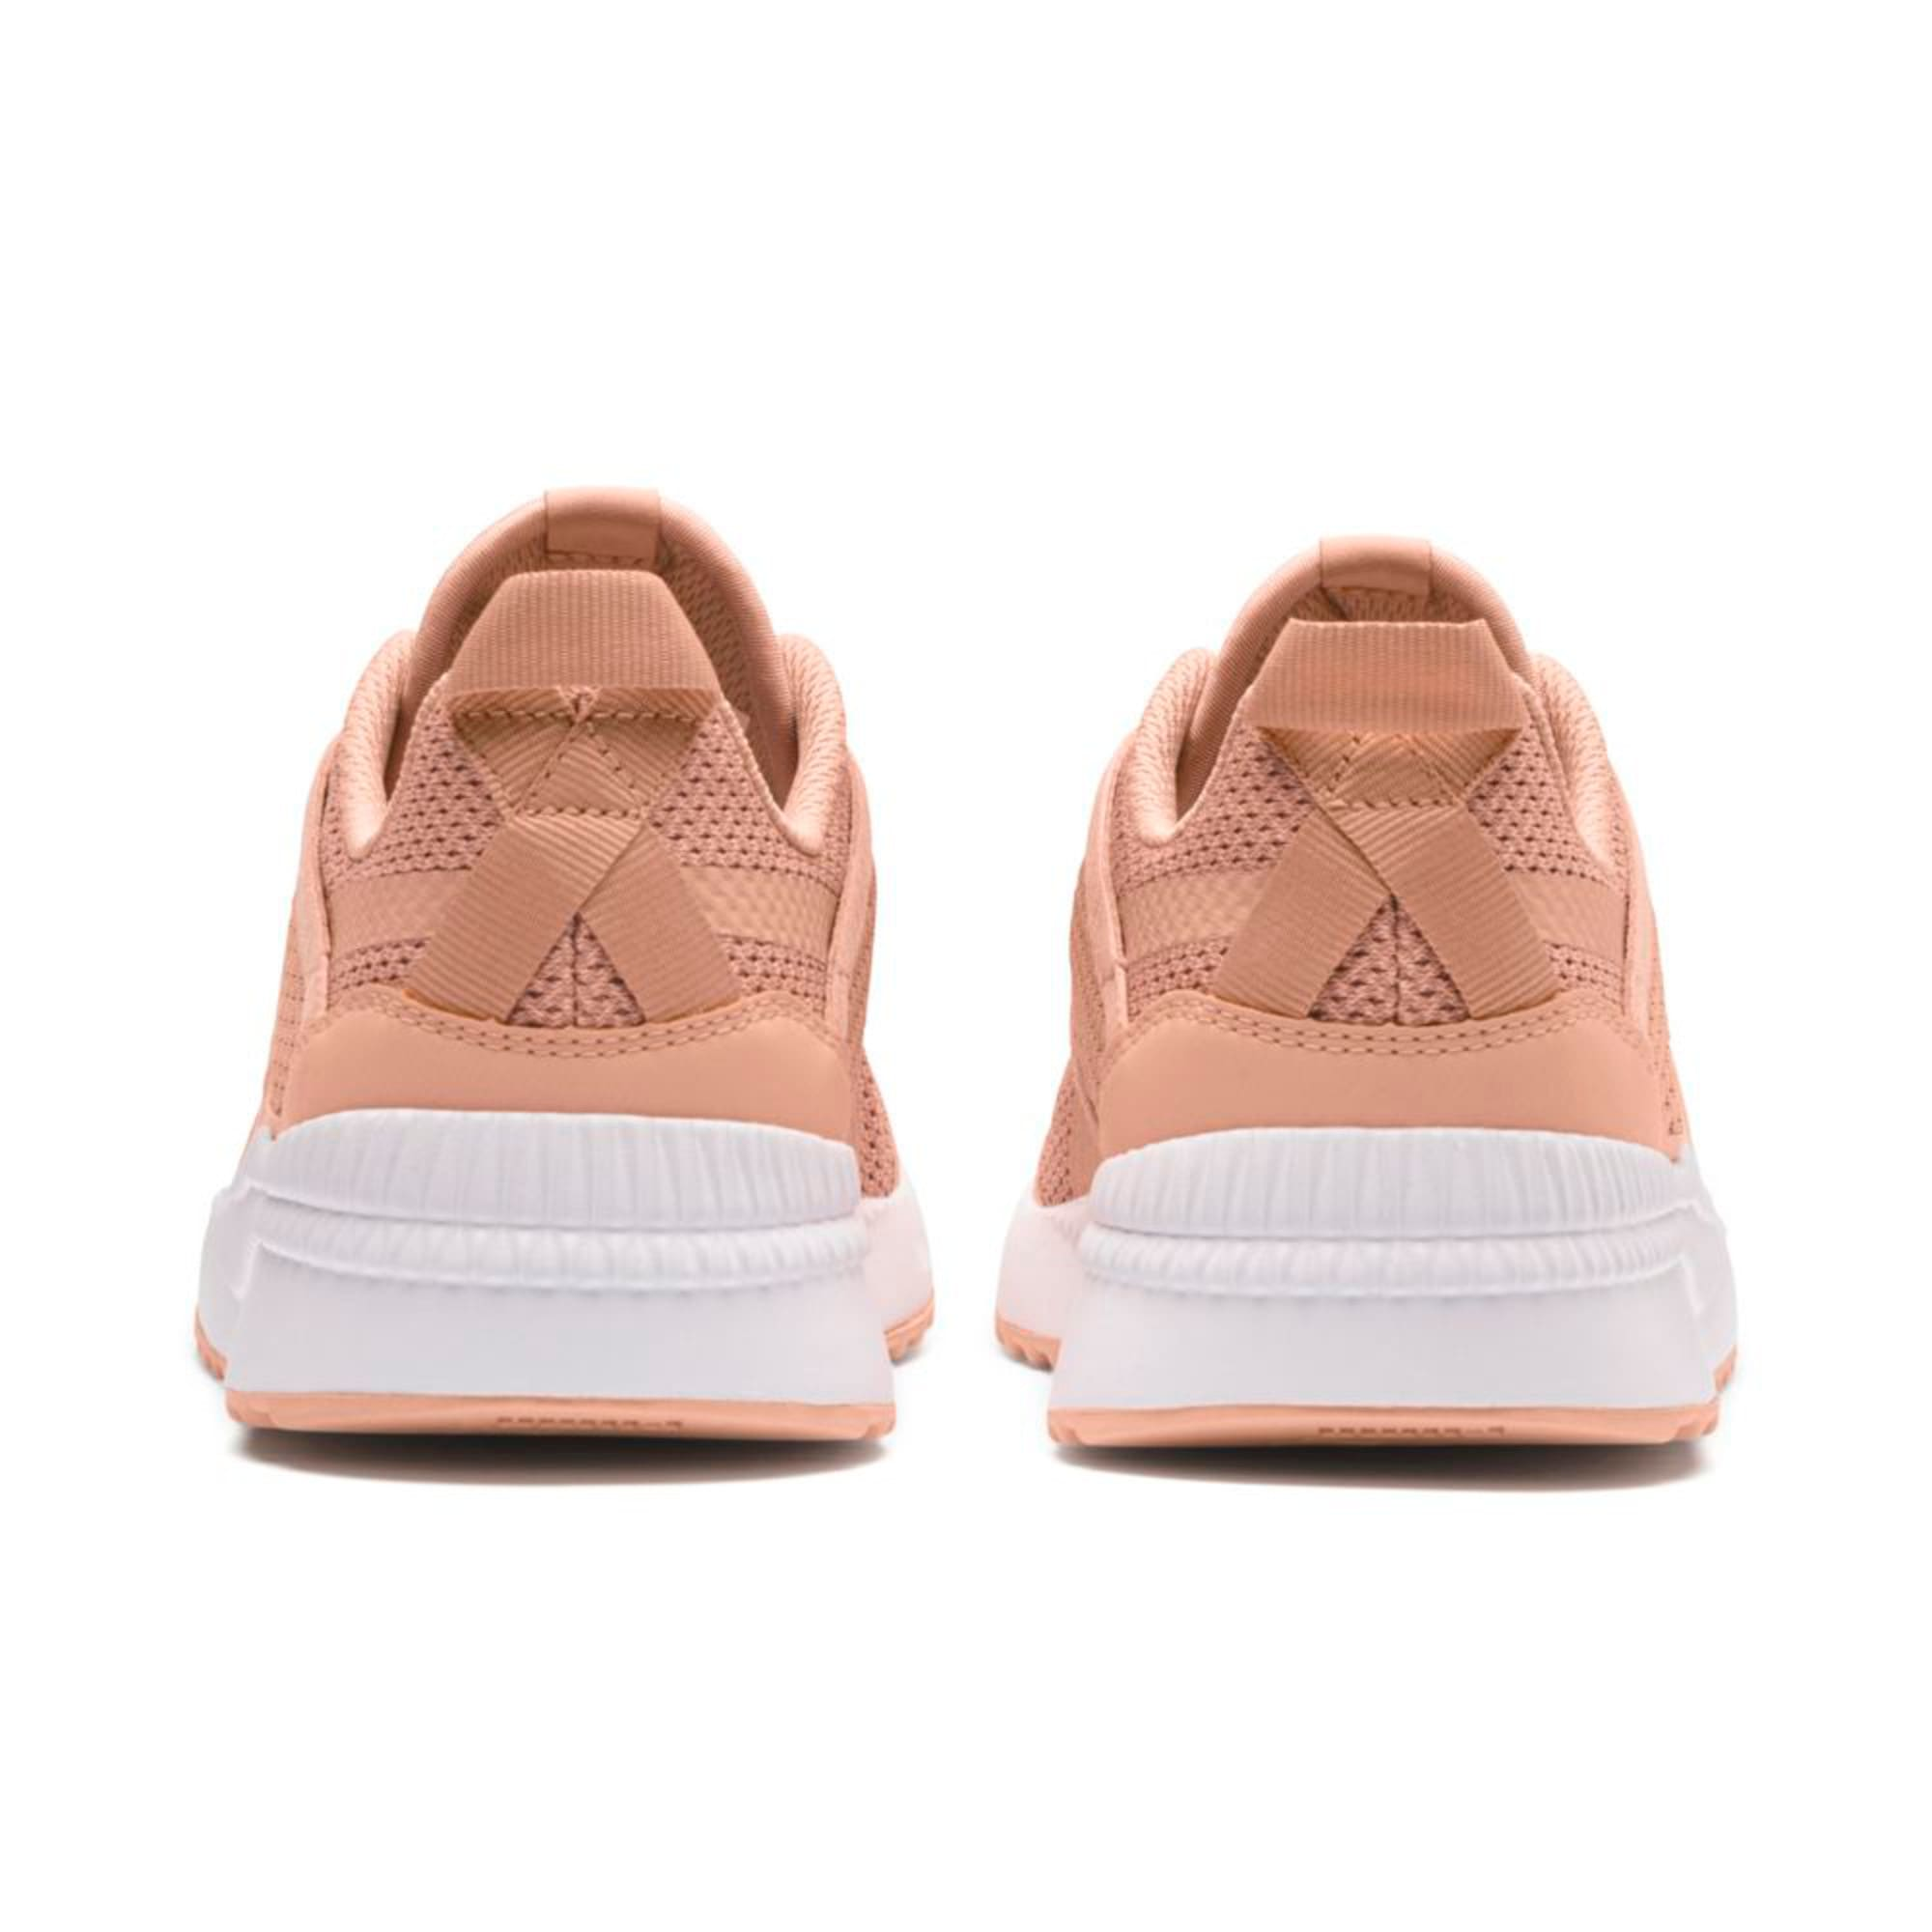 Thumbnail 4 of Pacer Next Net Trainers, Dusty Coral-Coral-White, medium-IND